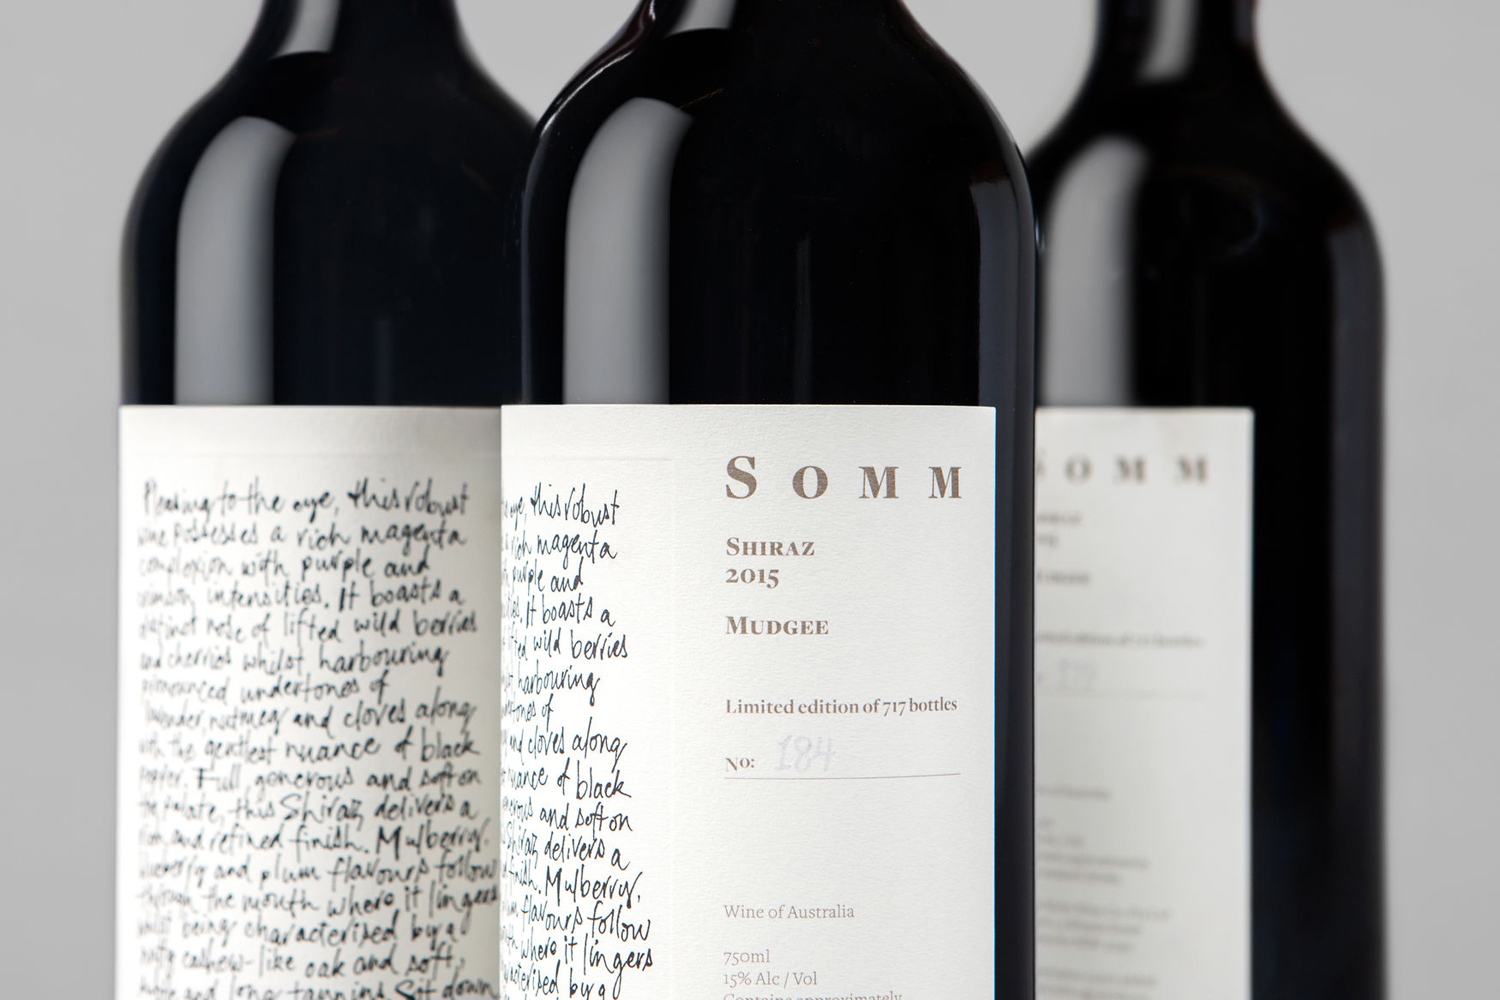 Wine label designed by Sydney-based Frost for Niche Wine Co.'s limited edition release Somm, an Australian Shiraz